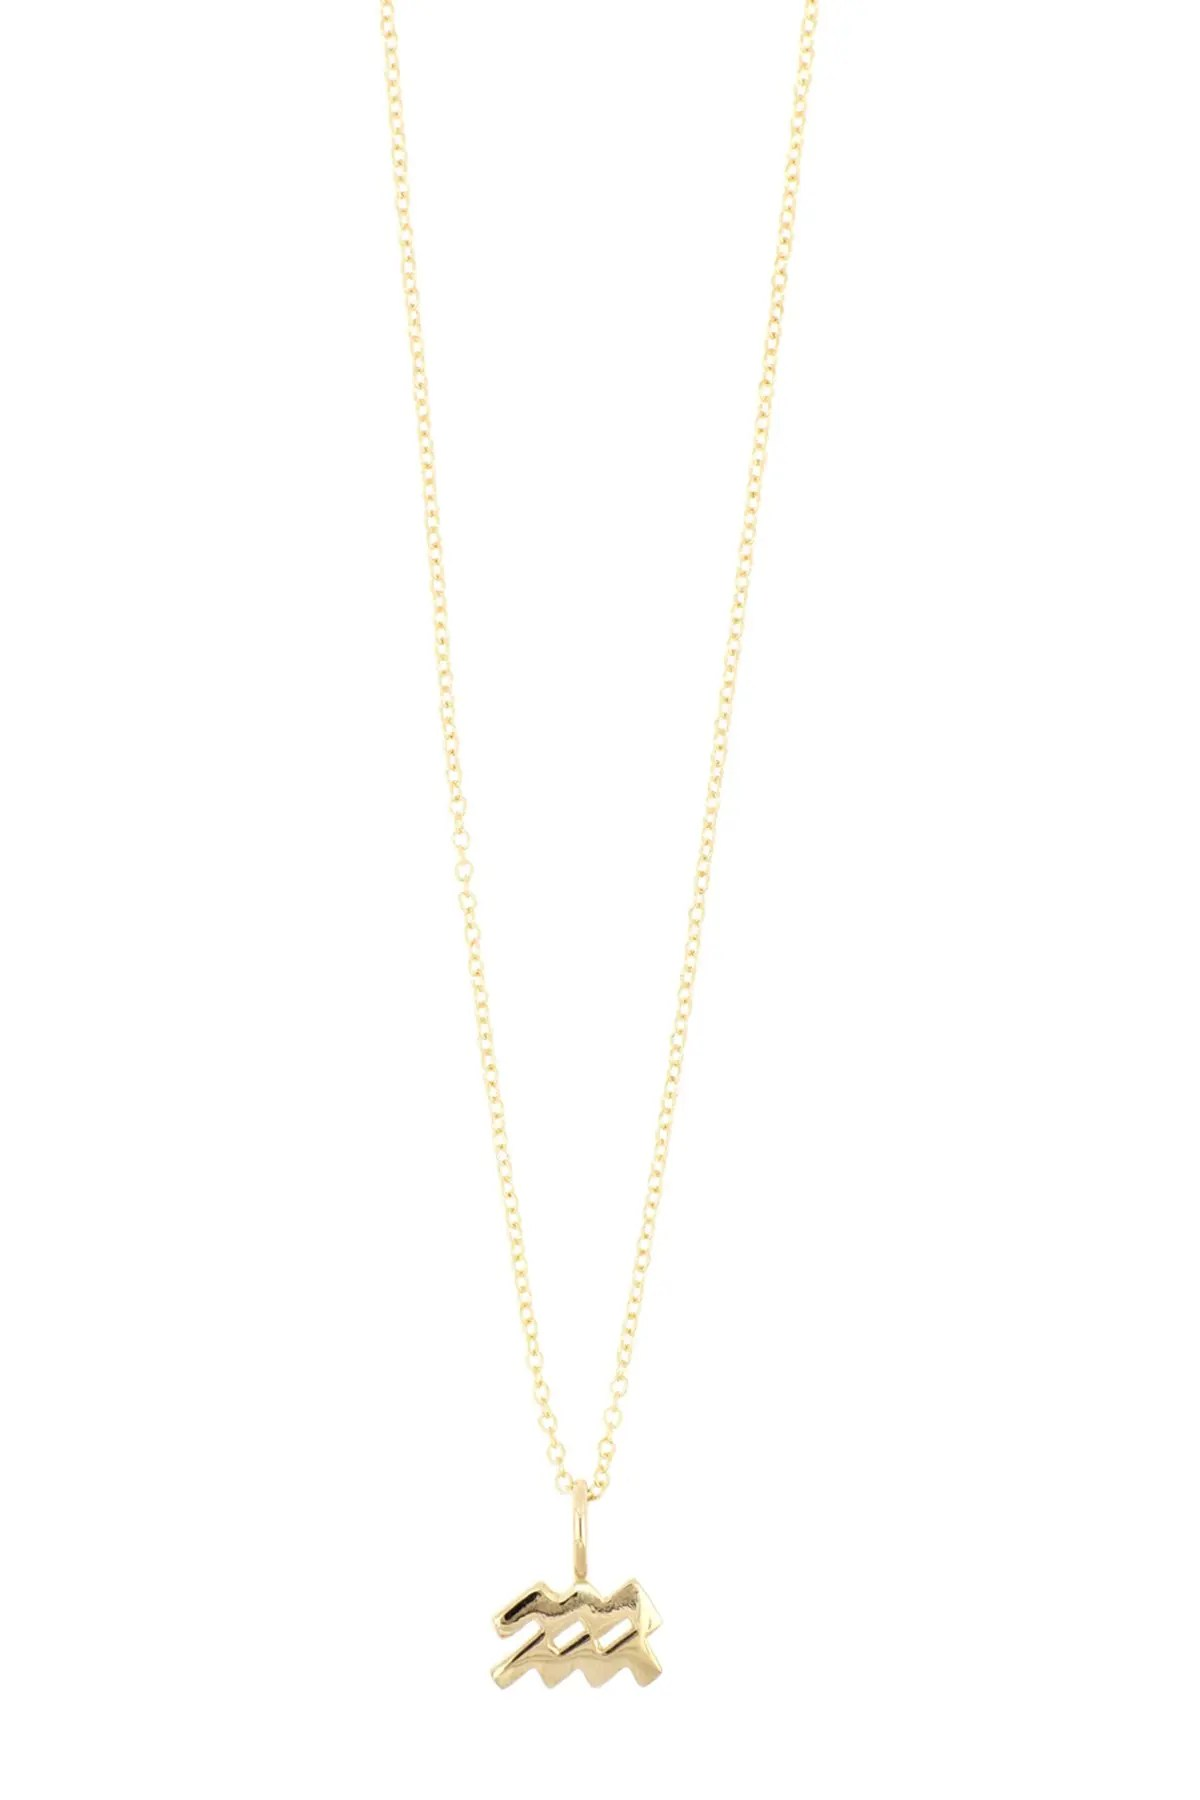 bony levy 14k gold petite horoscope pendant necklace multiple signs available nordstrom rack